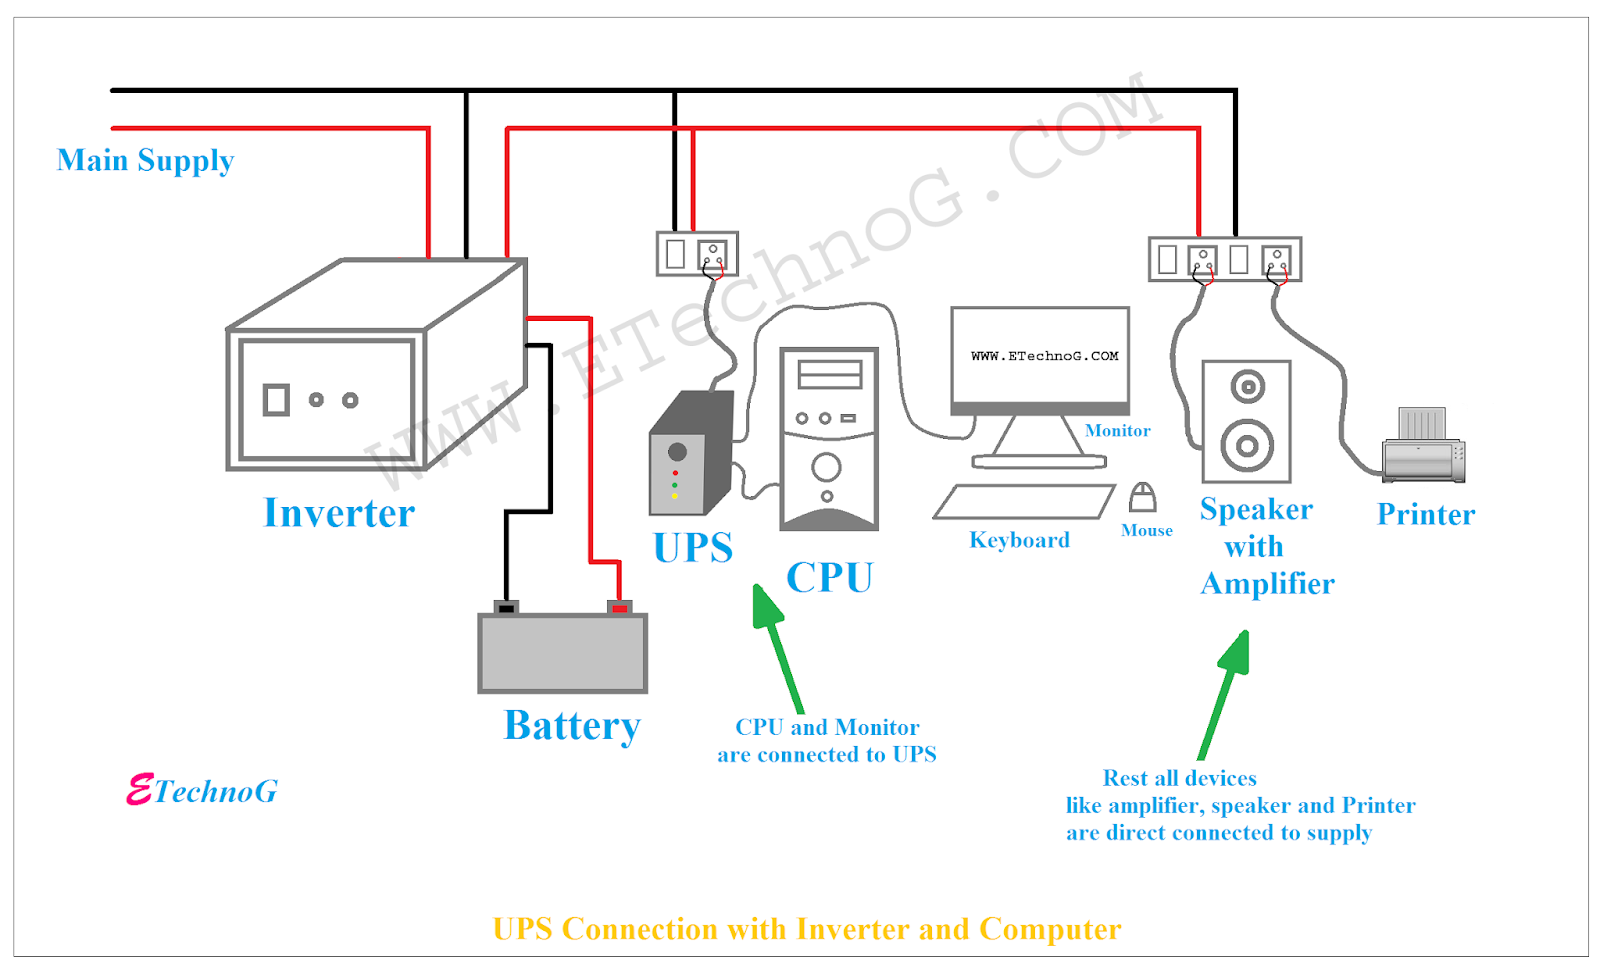 medium resolution of proper ups connection with loads inverter computer at home etechnogups connection ups connection diagram